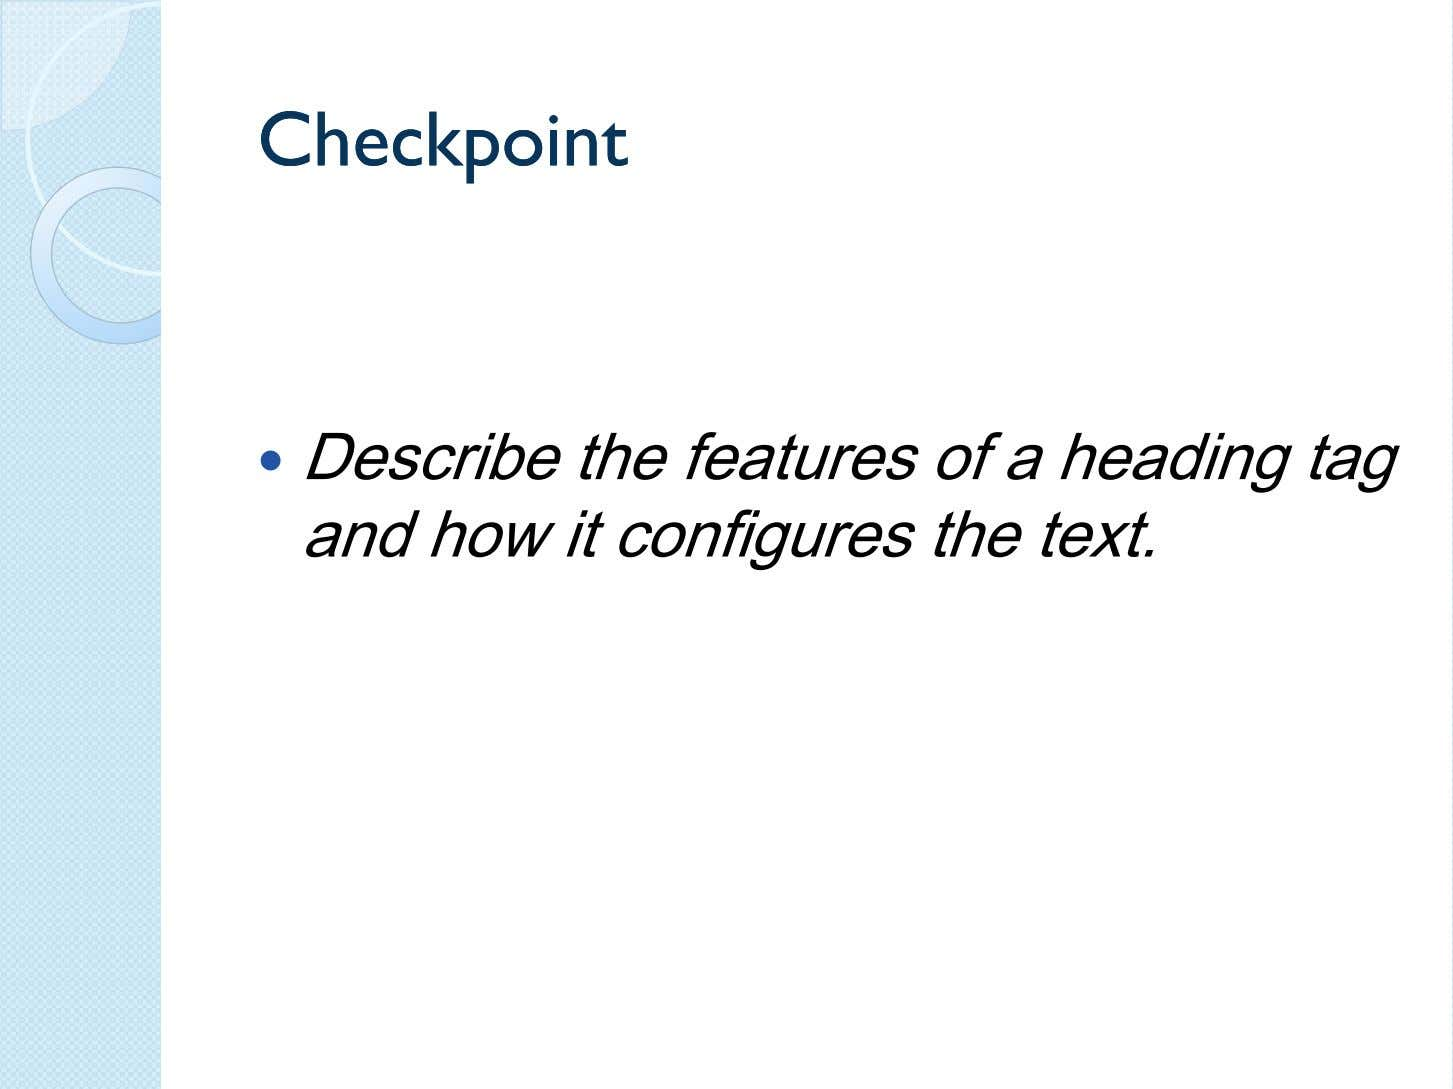 CheckpointCheckpoint Describe the features of a heading tag and how it configures the text.